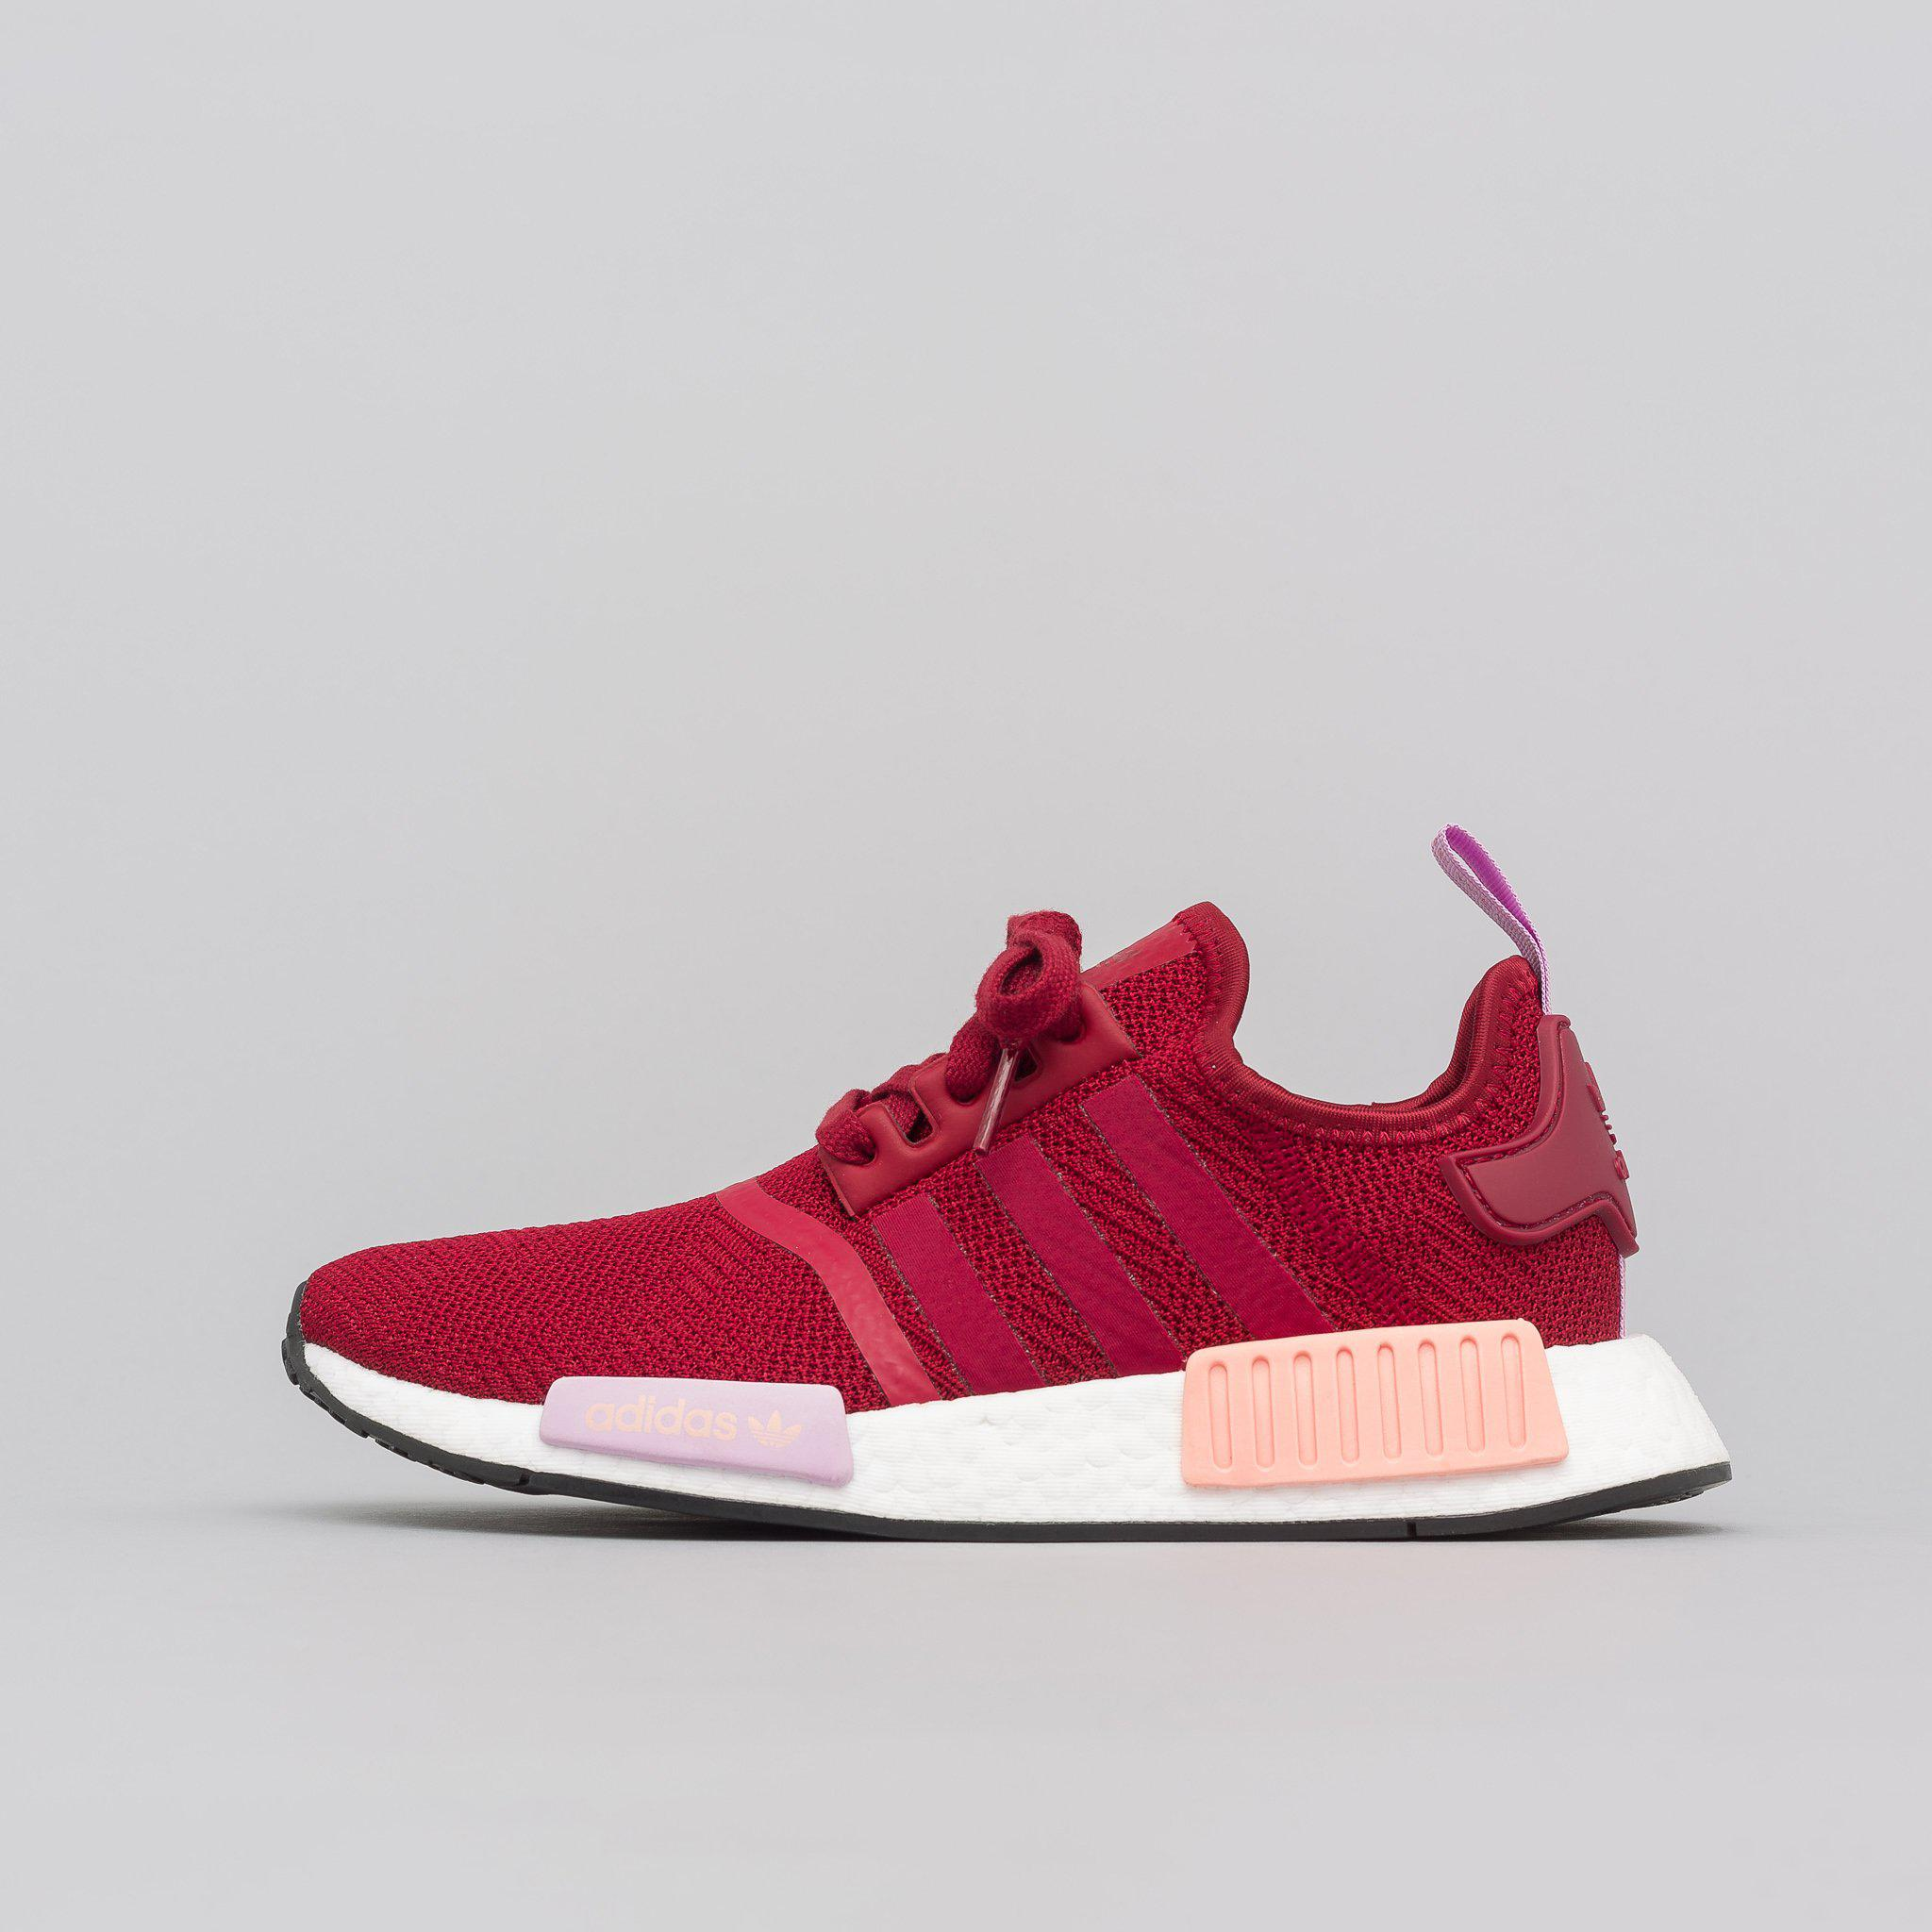 san francisco 437bc 87bad Adidas Multicolor Women's Nmd R1 In Burgundy for men